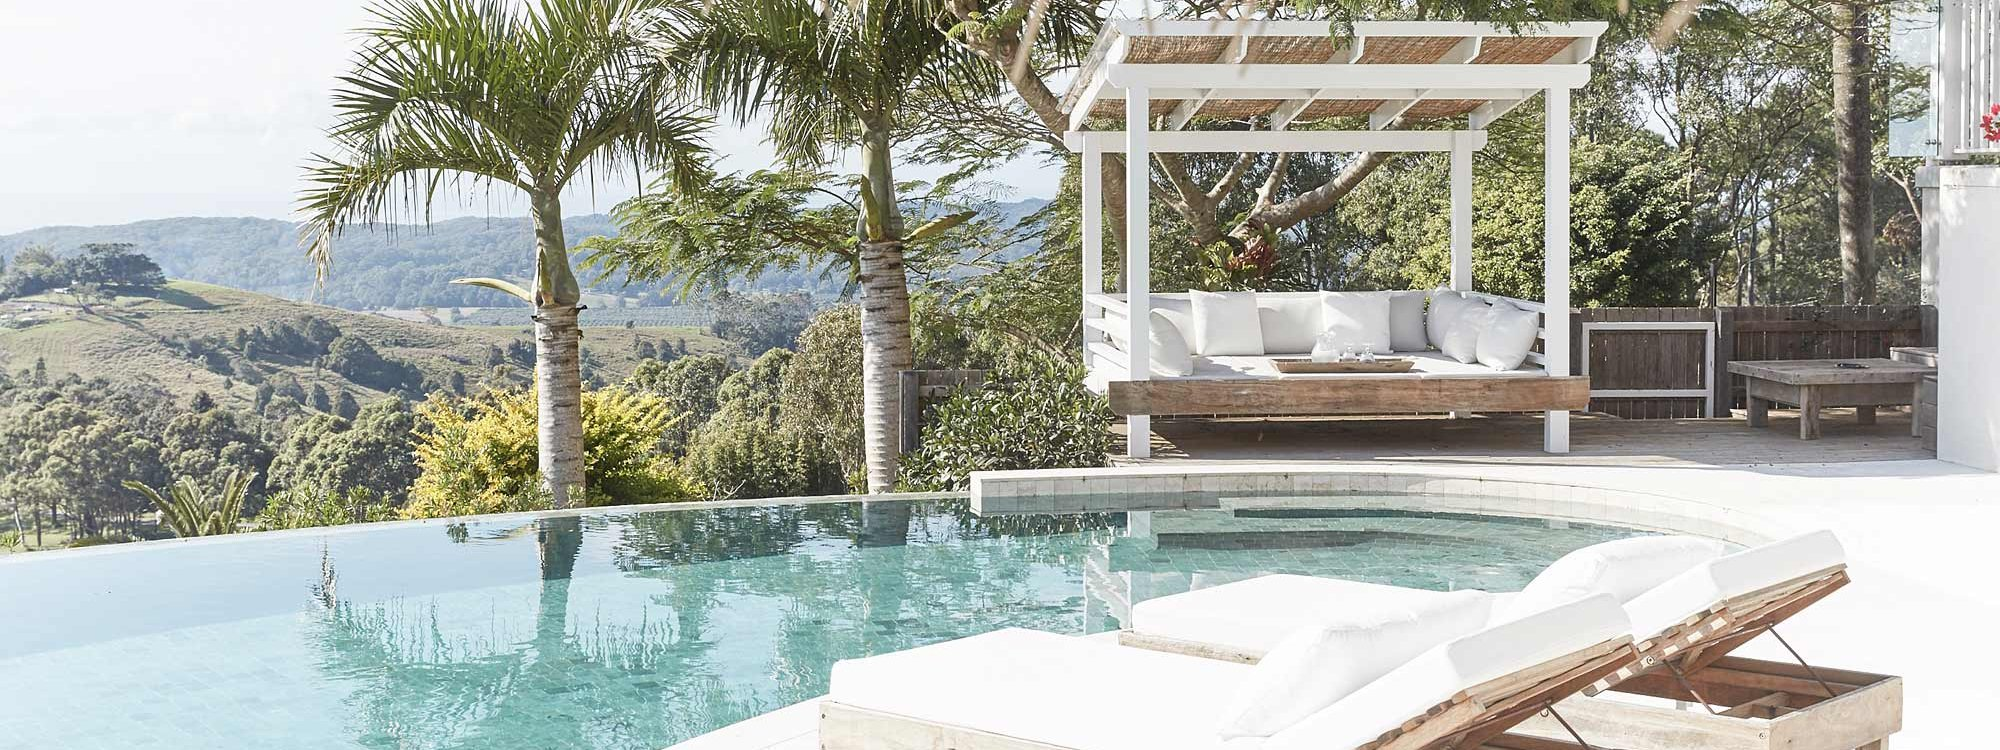 Picadilly House - Byron Bay - Pool Chairs and Cabana